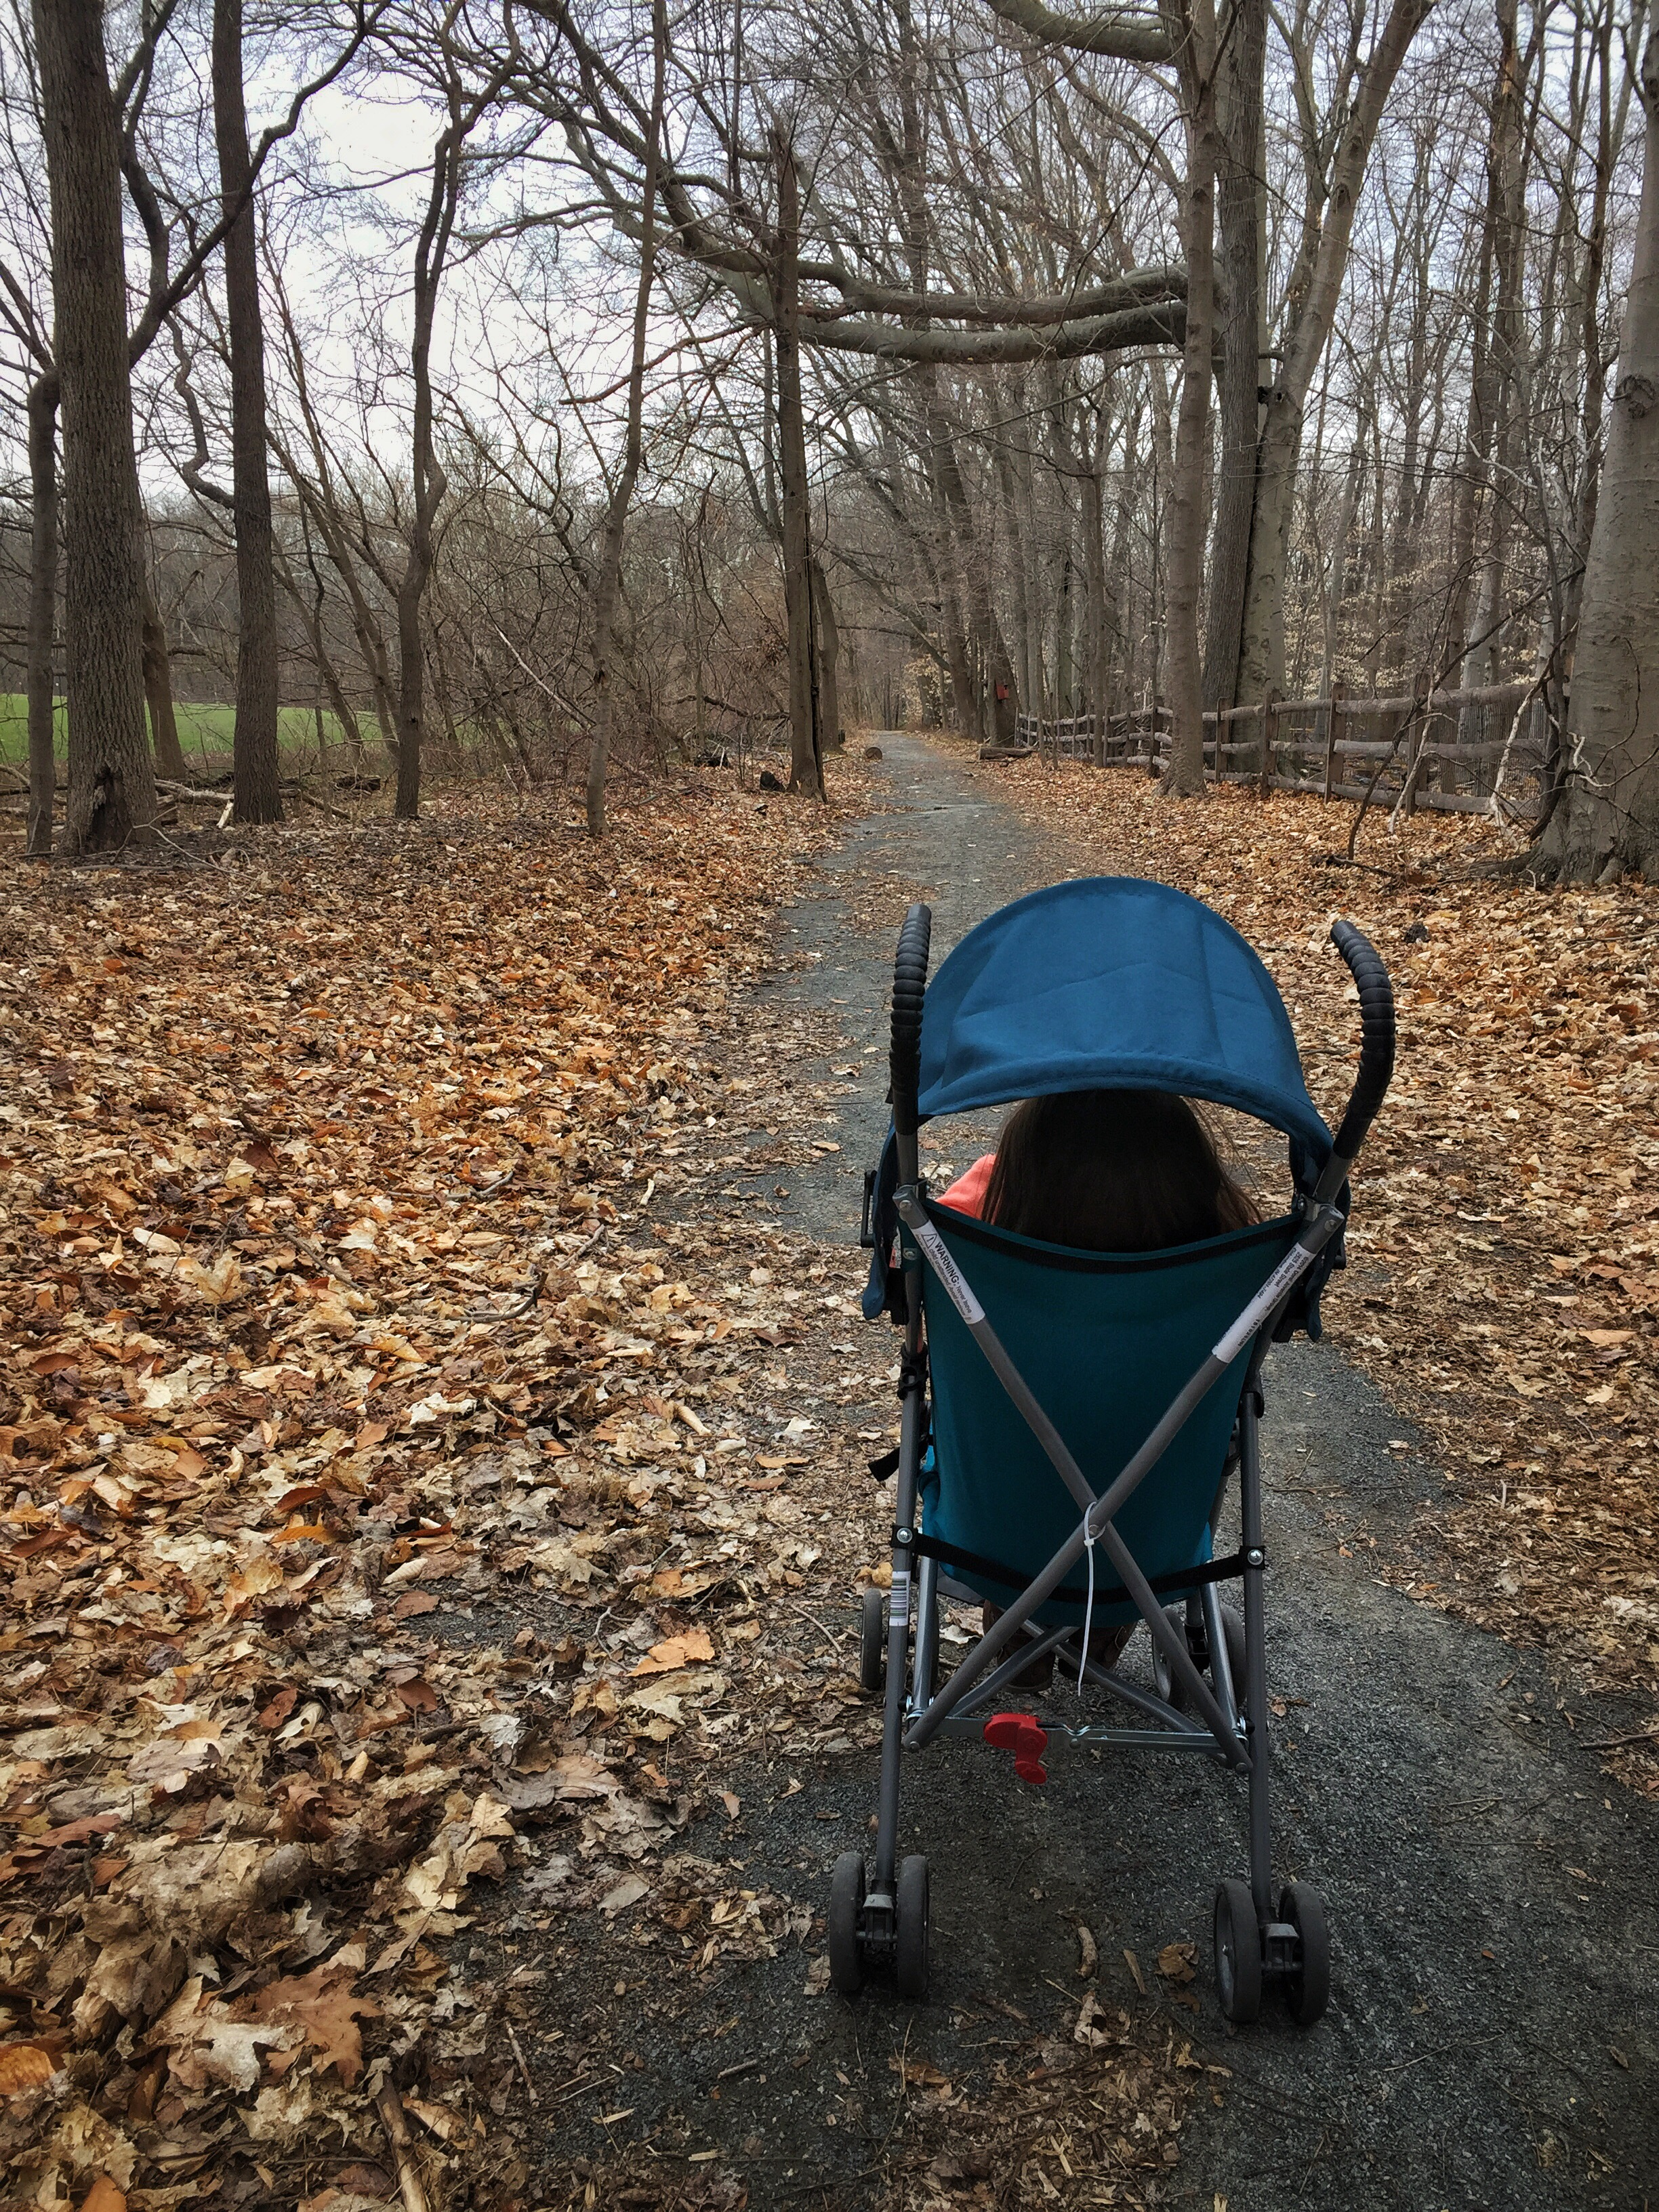 Child on a stroller on a path surrounded by fallen leaves on a grey autumn day